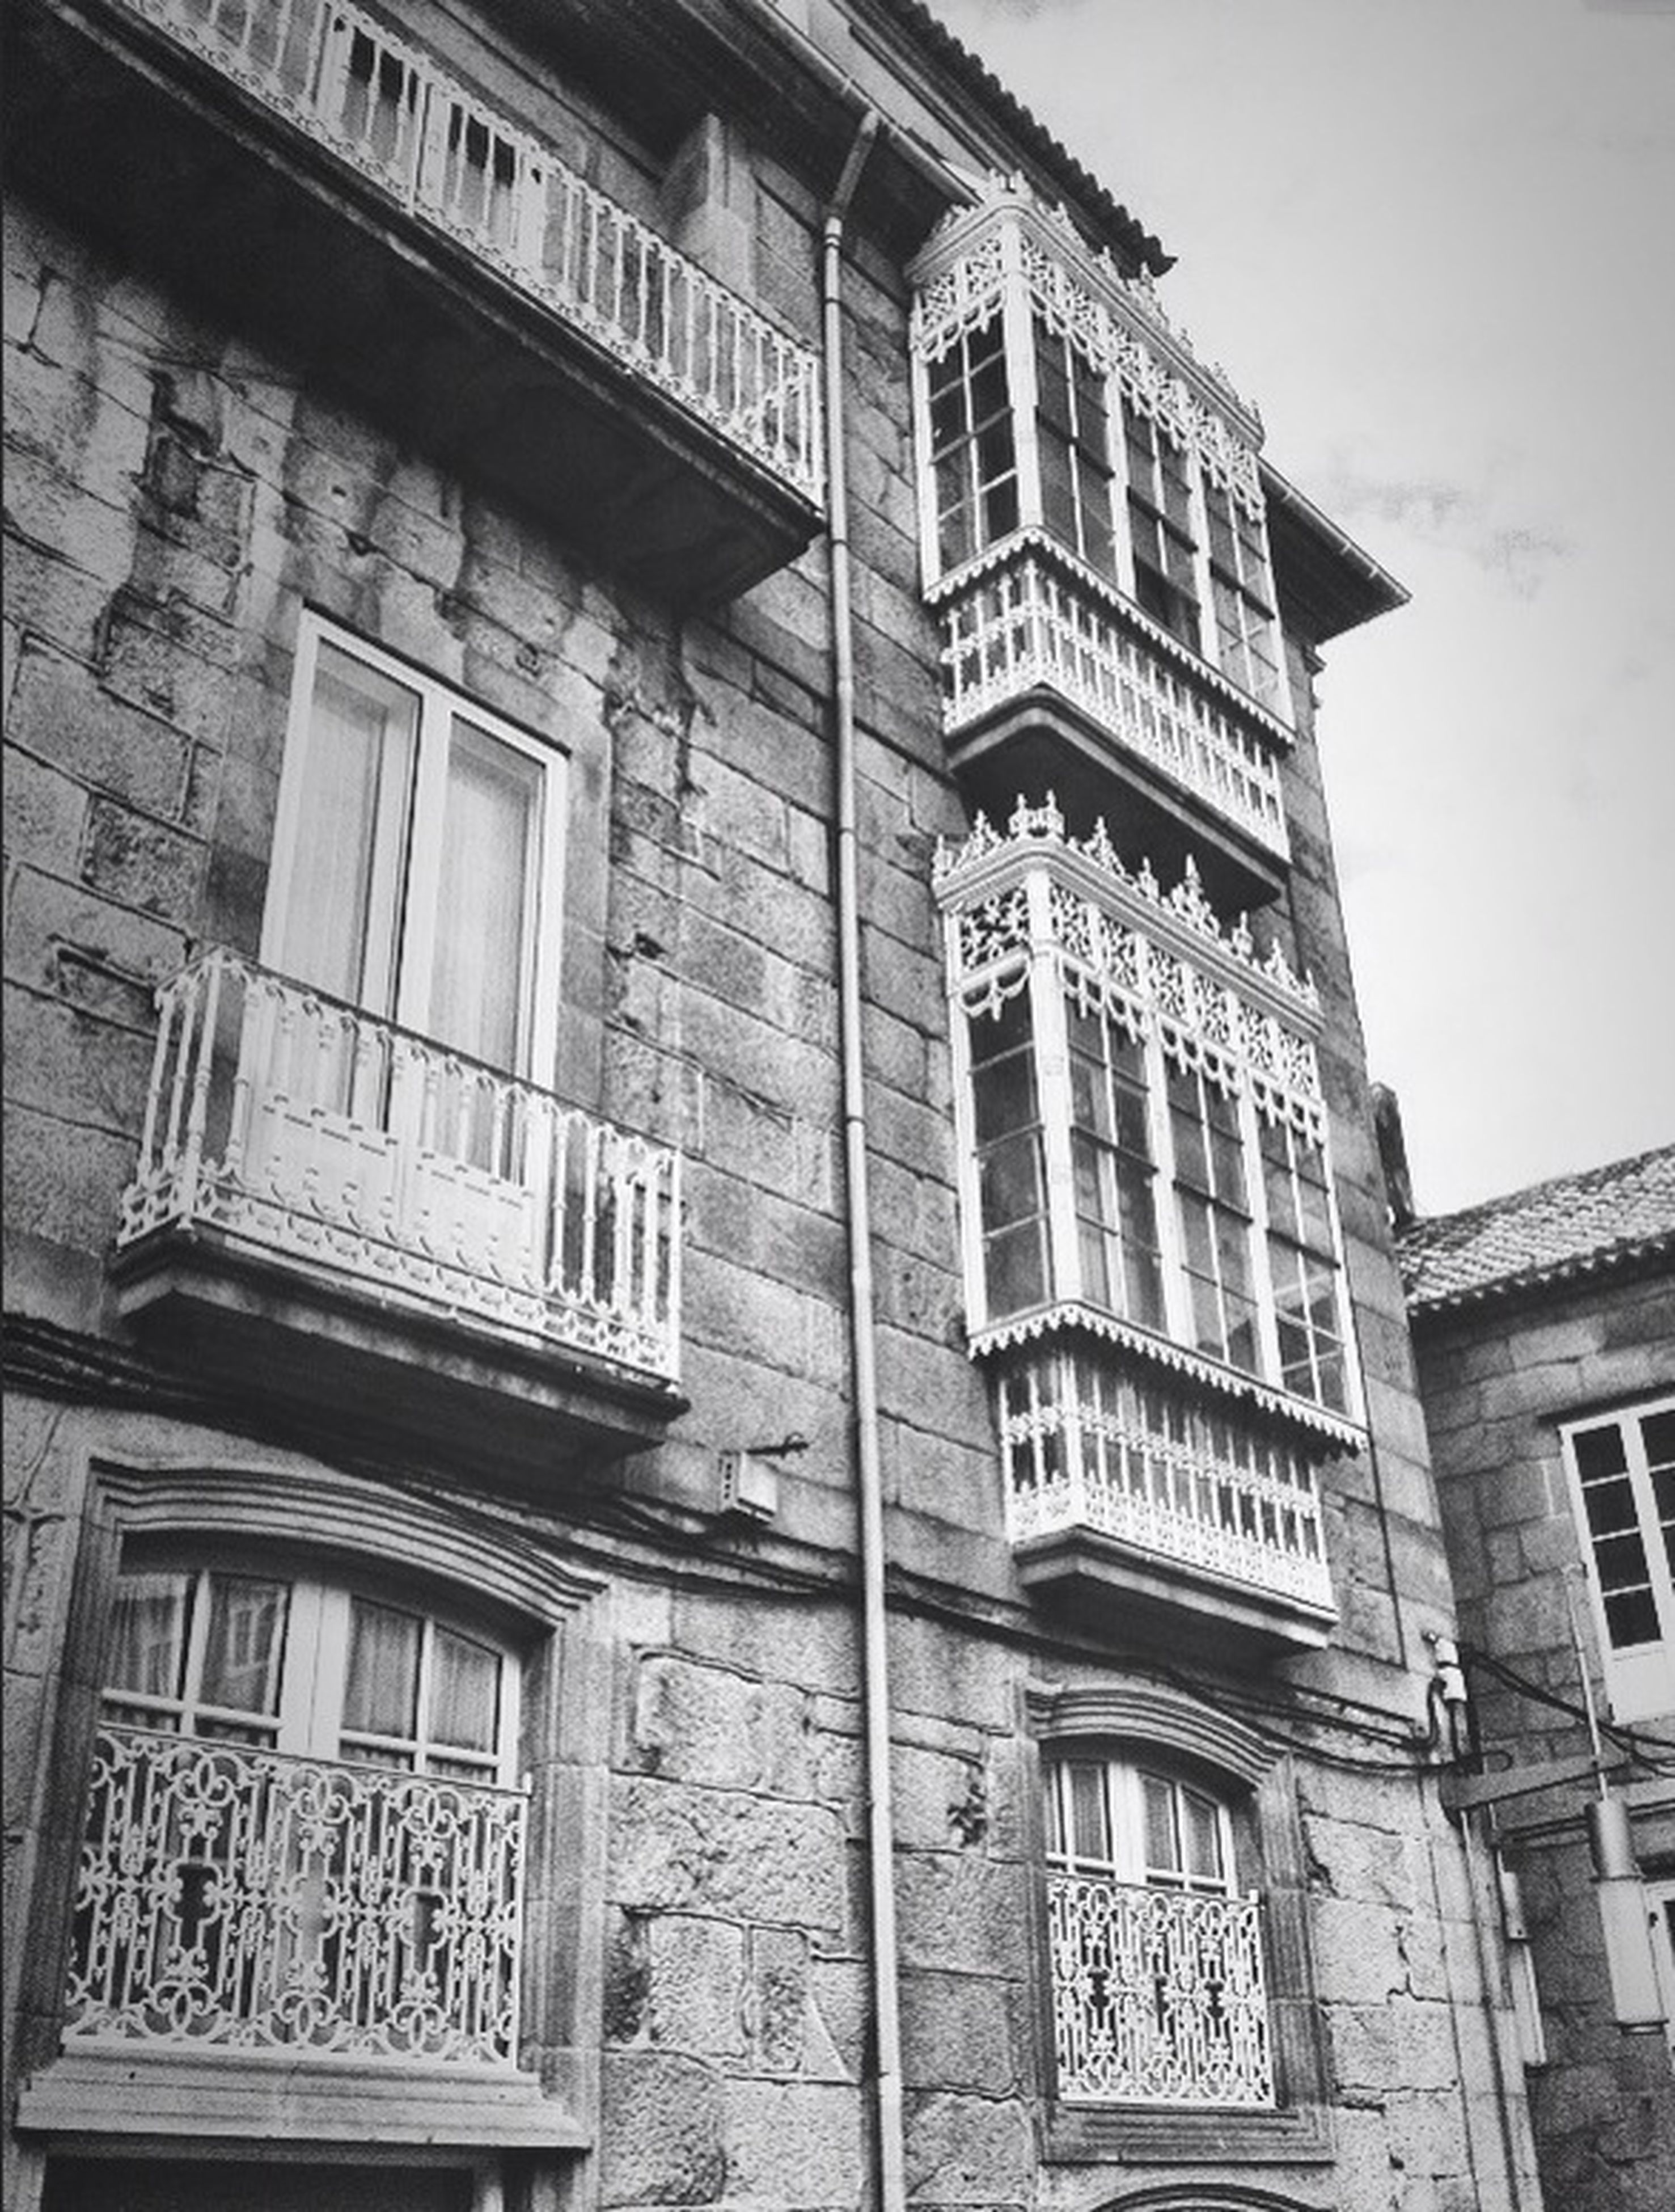 architecture, building exterior, built structure, window, low angle view, building, residential building, residential structure, city, balcony, facade, sky, day, old, outdoors, no people, clear sky, glass - material, house, history